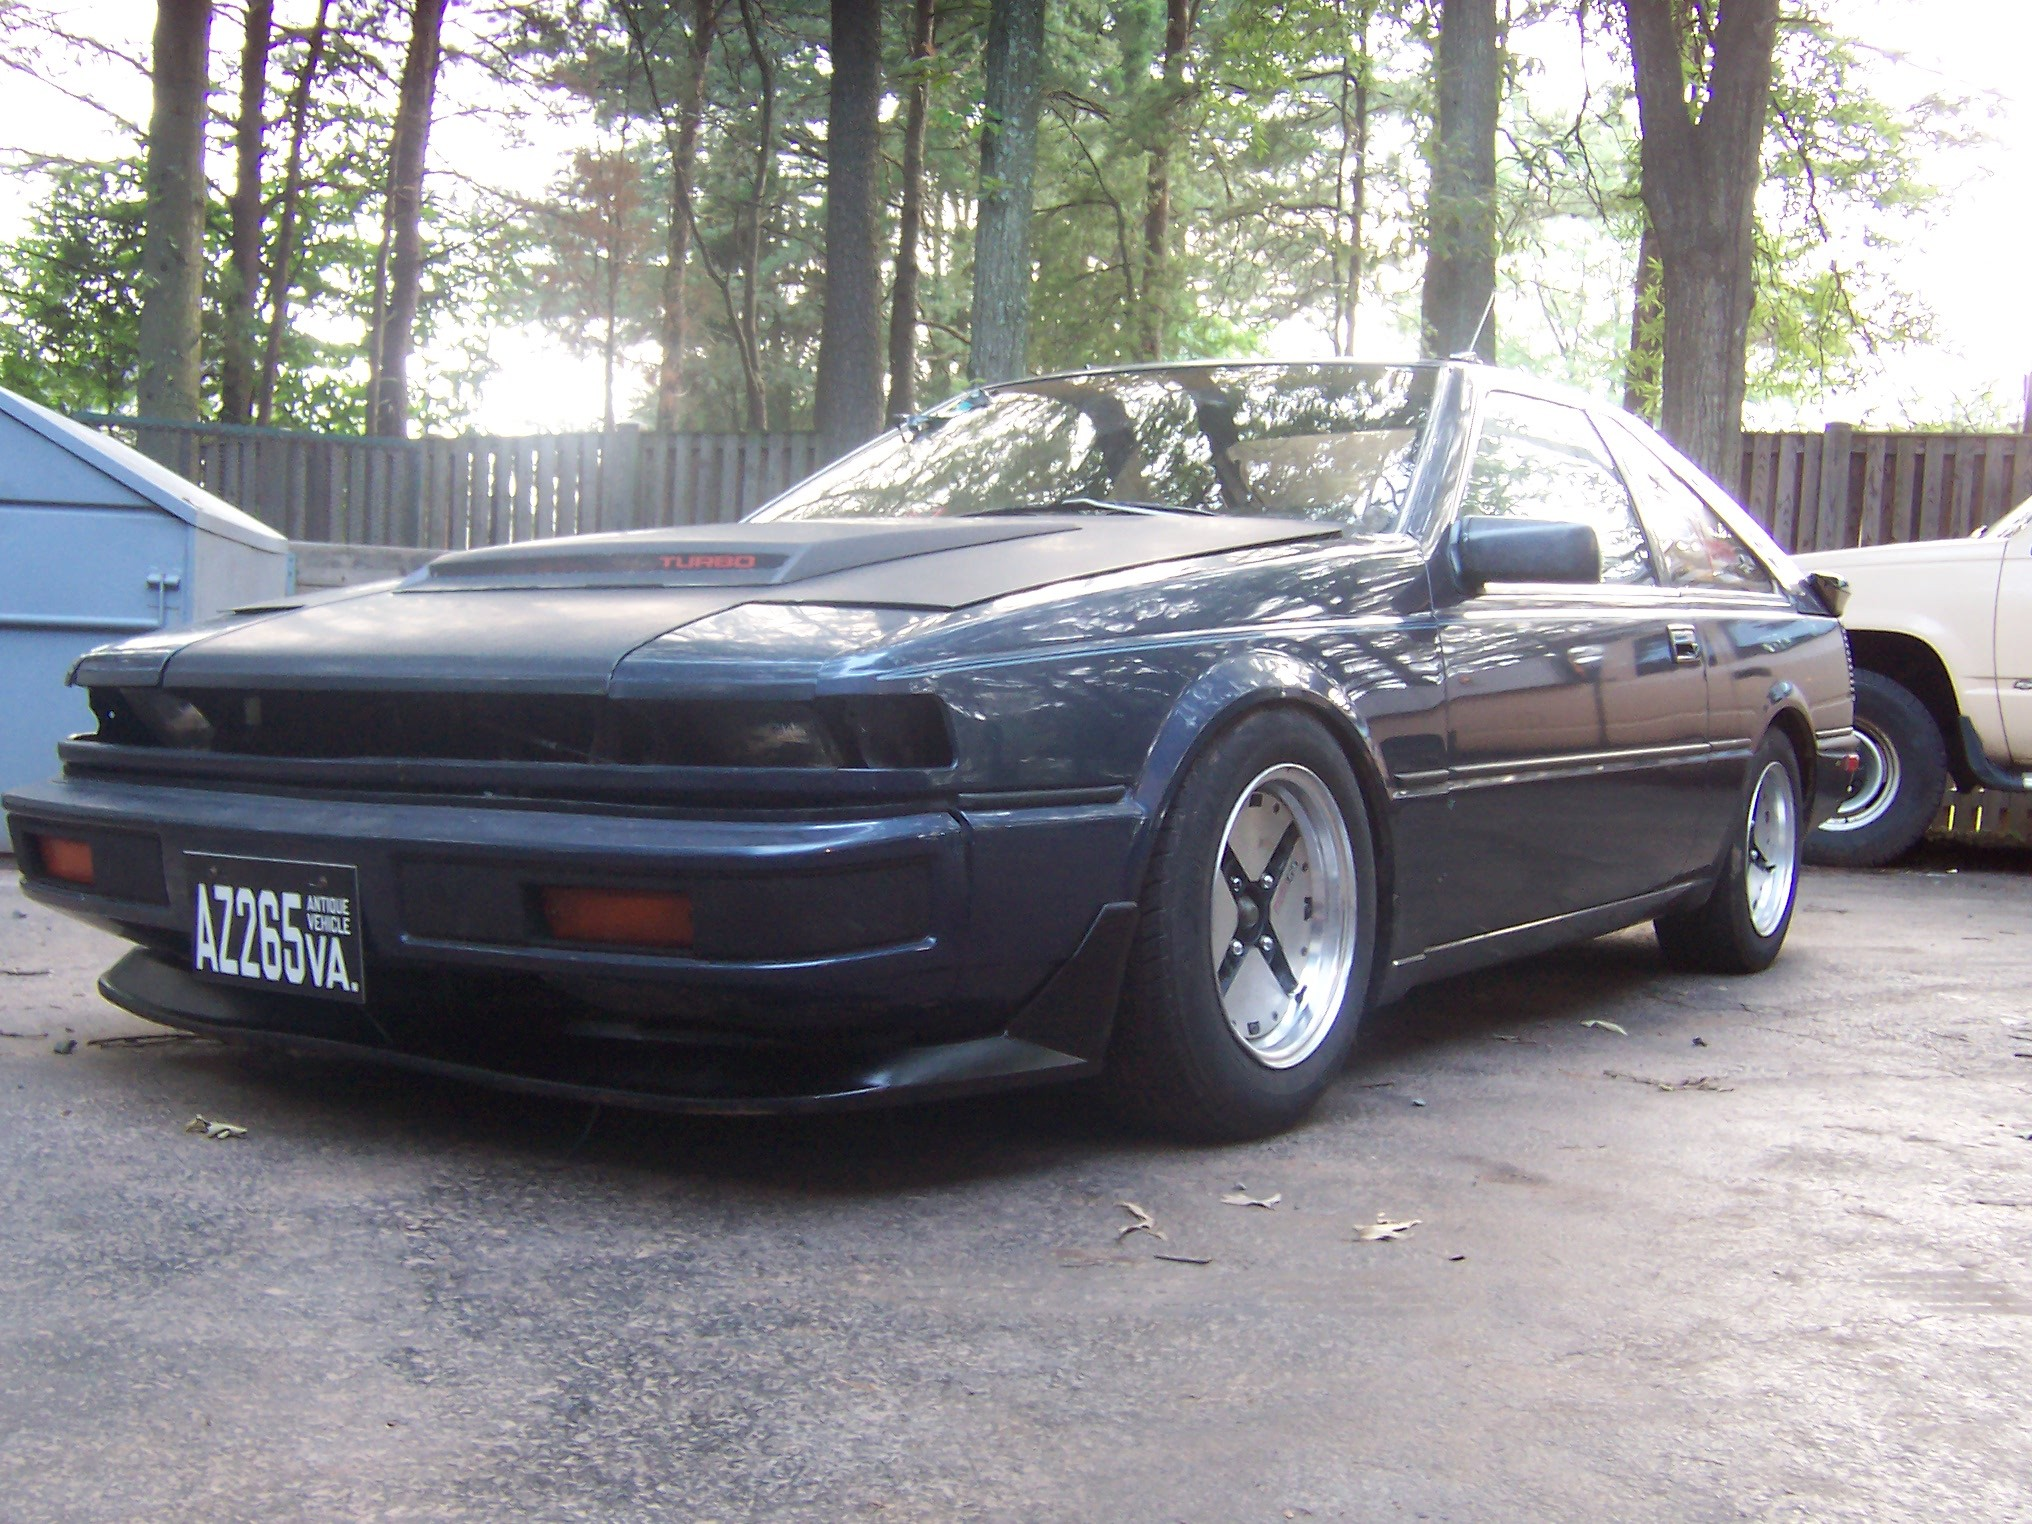 Japan Name For Nissan 200sx S12 - Year of Clean Water